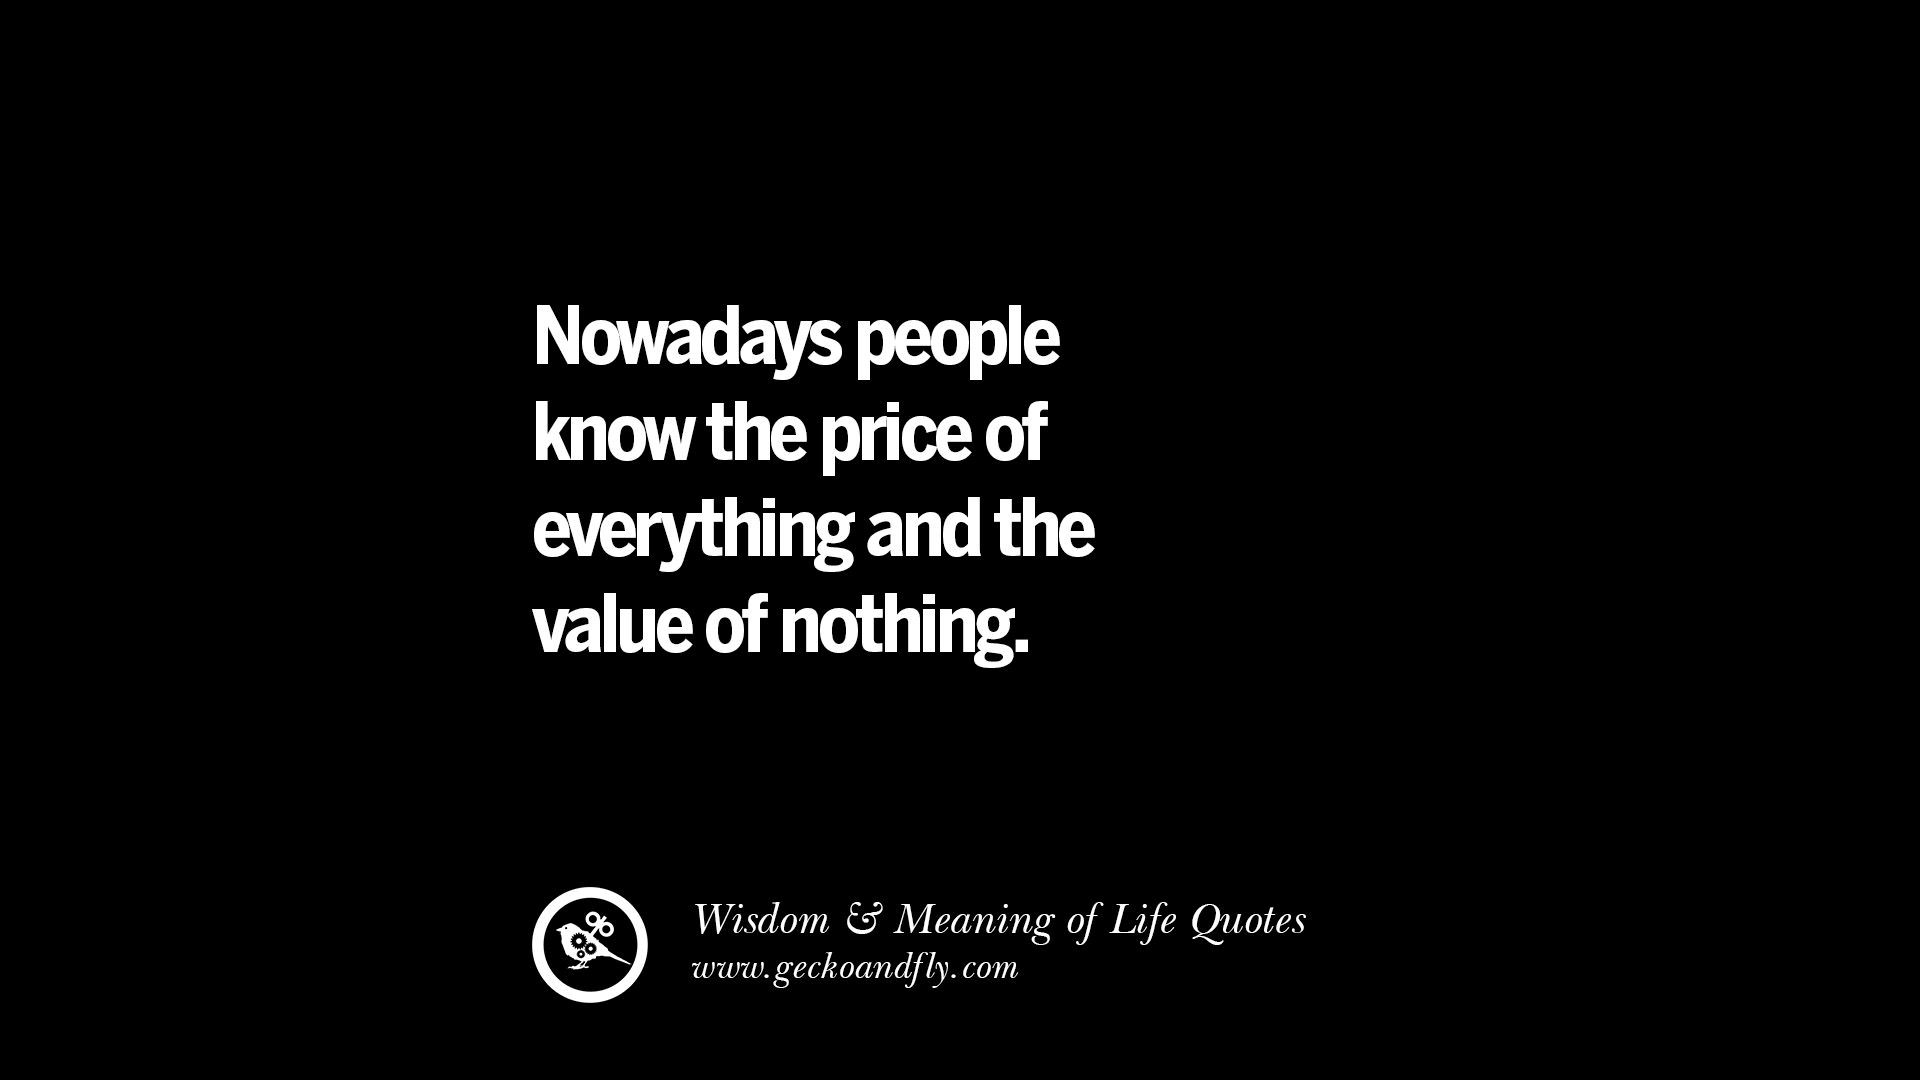 Funny Quotes About Nothing: 24 Funny Eye Opening Quotes About Wisdom, Truth And